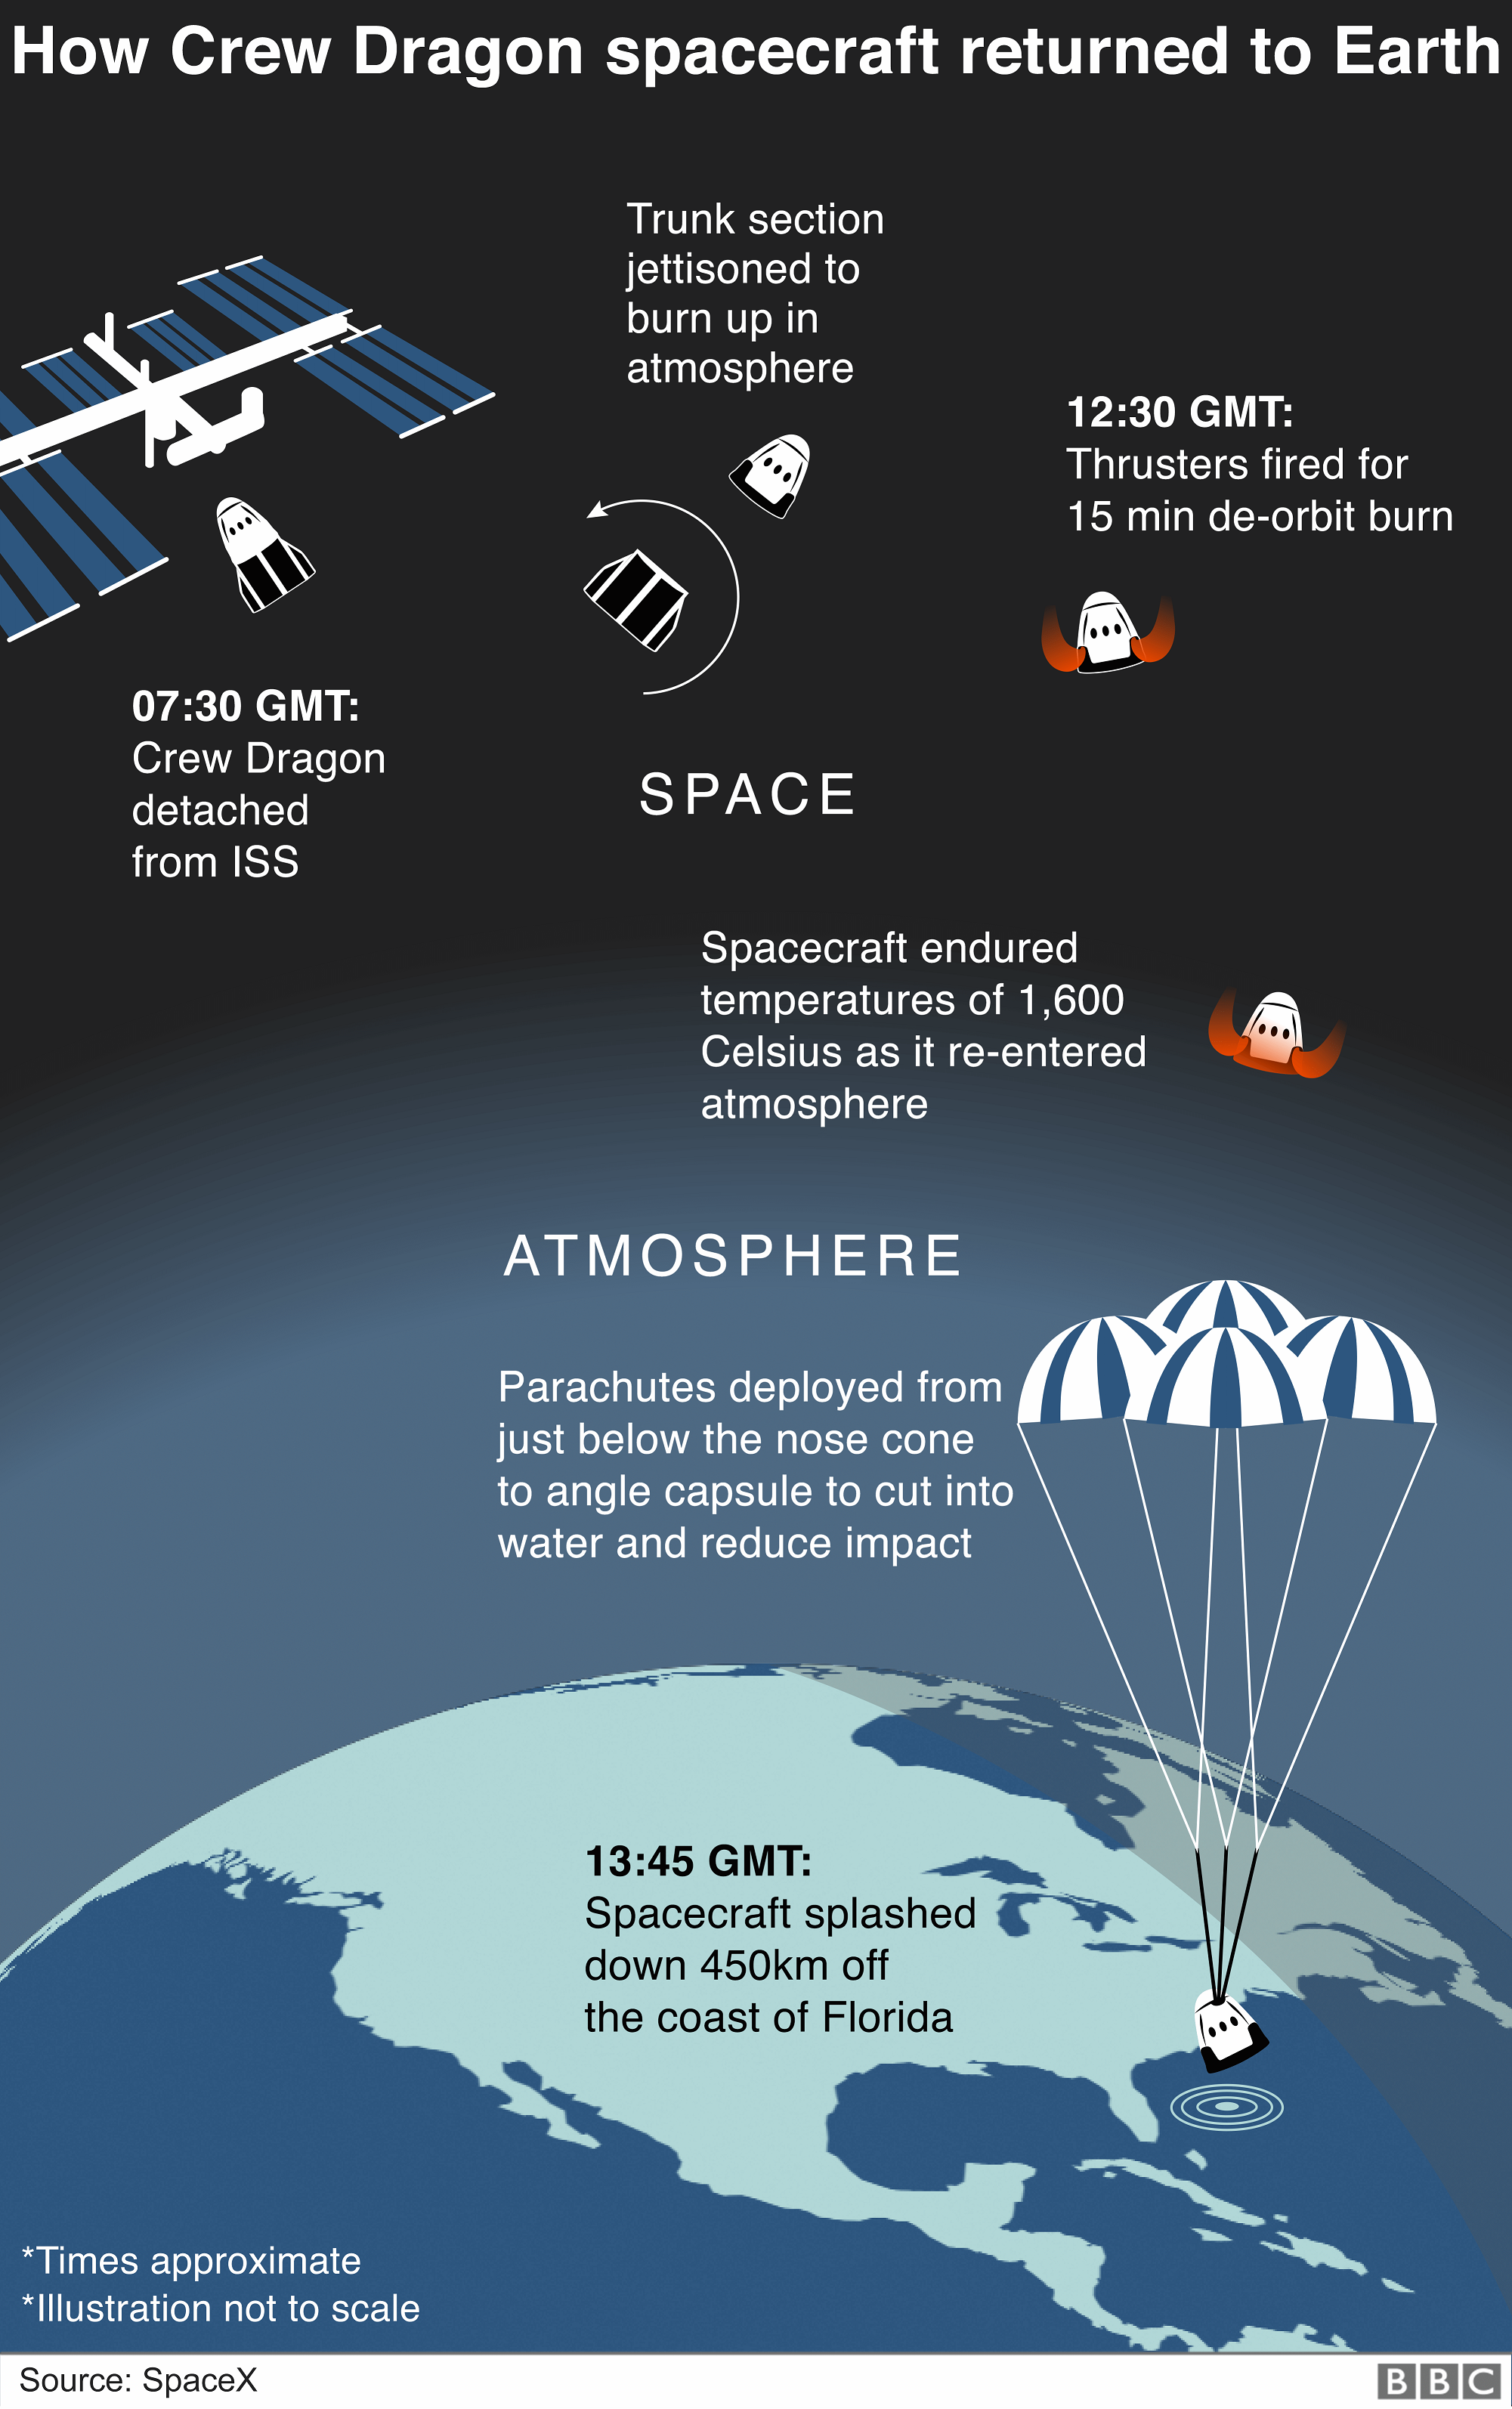 Graphic: How the Dragon spacecraft returned to Earth